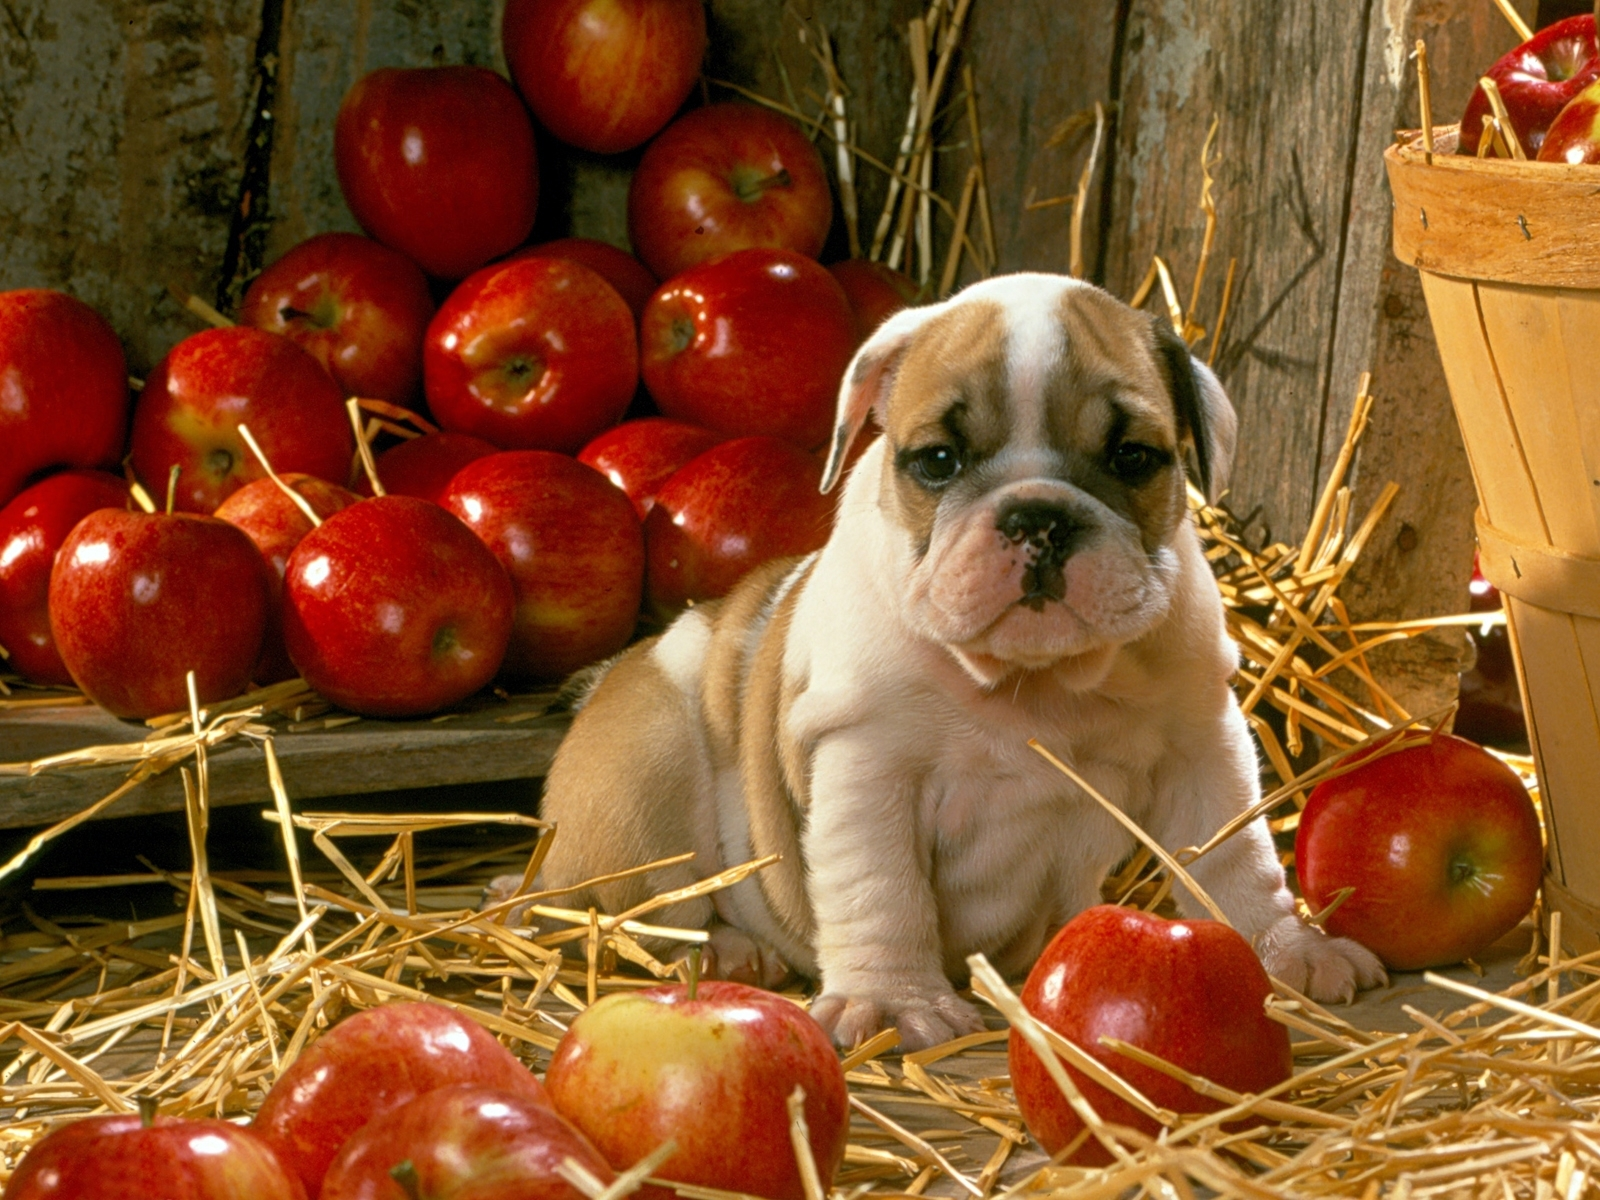 6716 download wallpaper Animals, Dogs, Apples screensavers and pictures for free